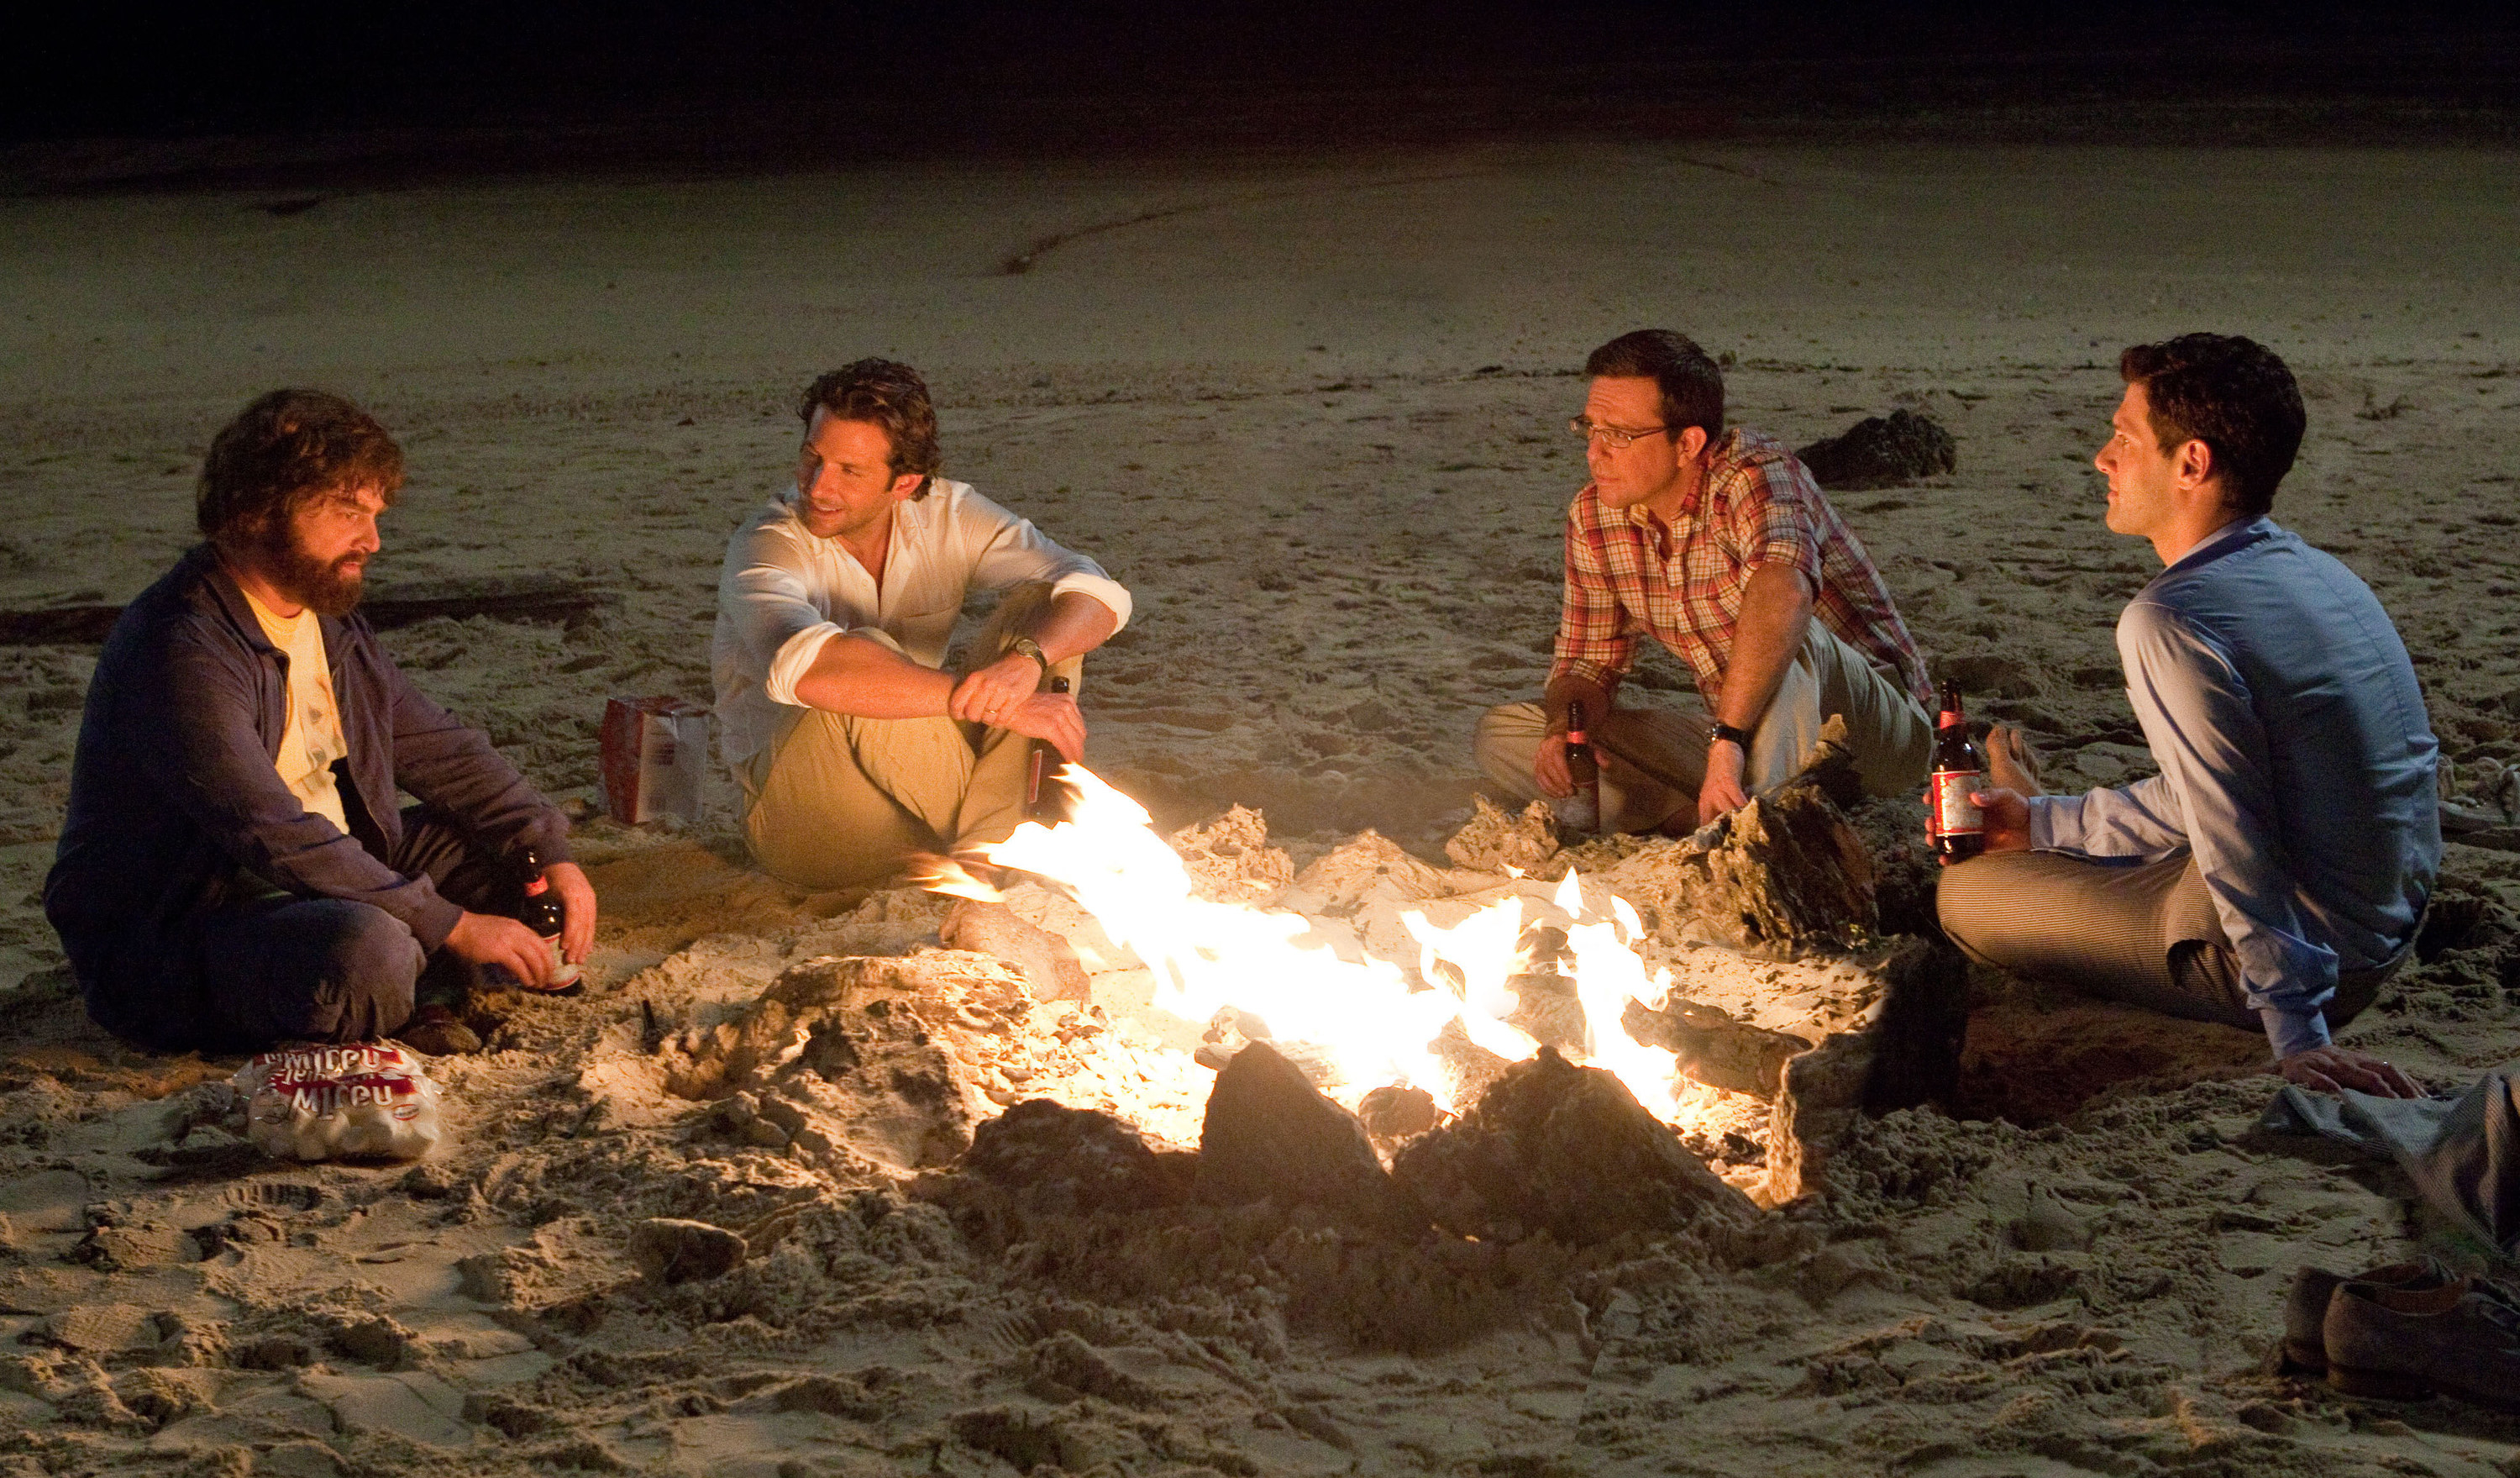 A still from the movie The Hangover shows the four guys on the beach sitting around a small bonfire